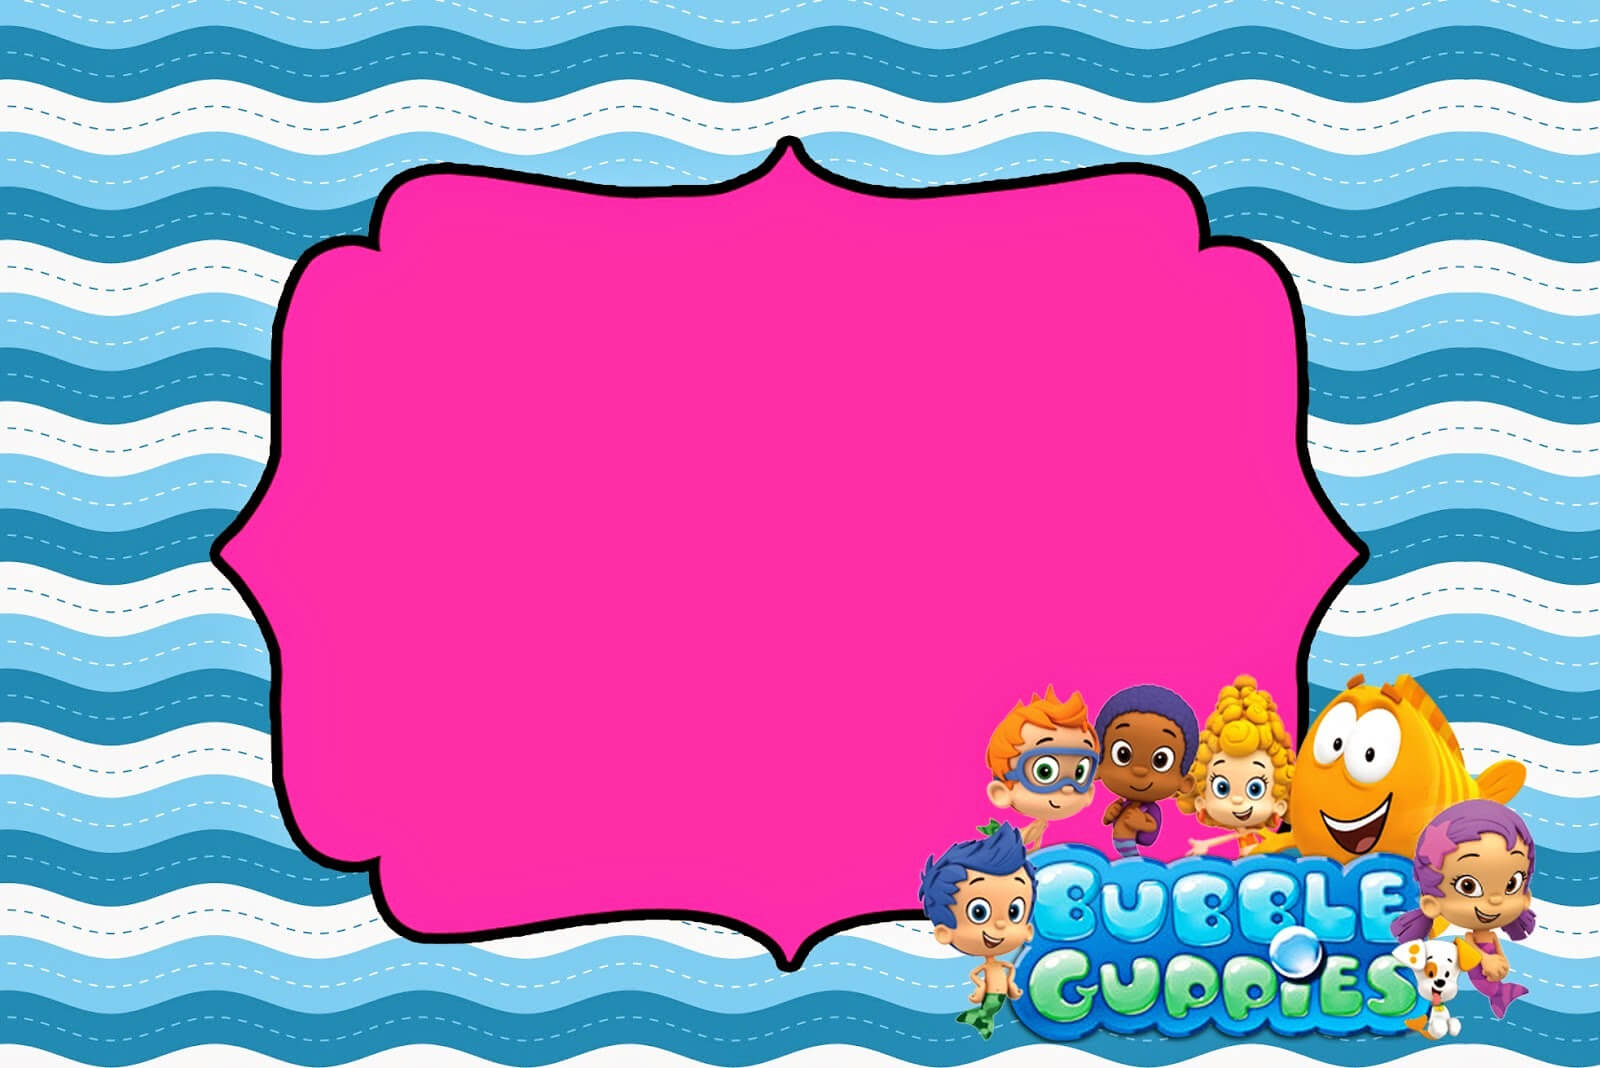 Tips & Ideas: Lovely Bubble Guppies Invitations For Your Inside Bubble Guppies Birthday Banner Template